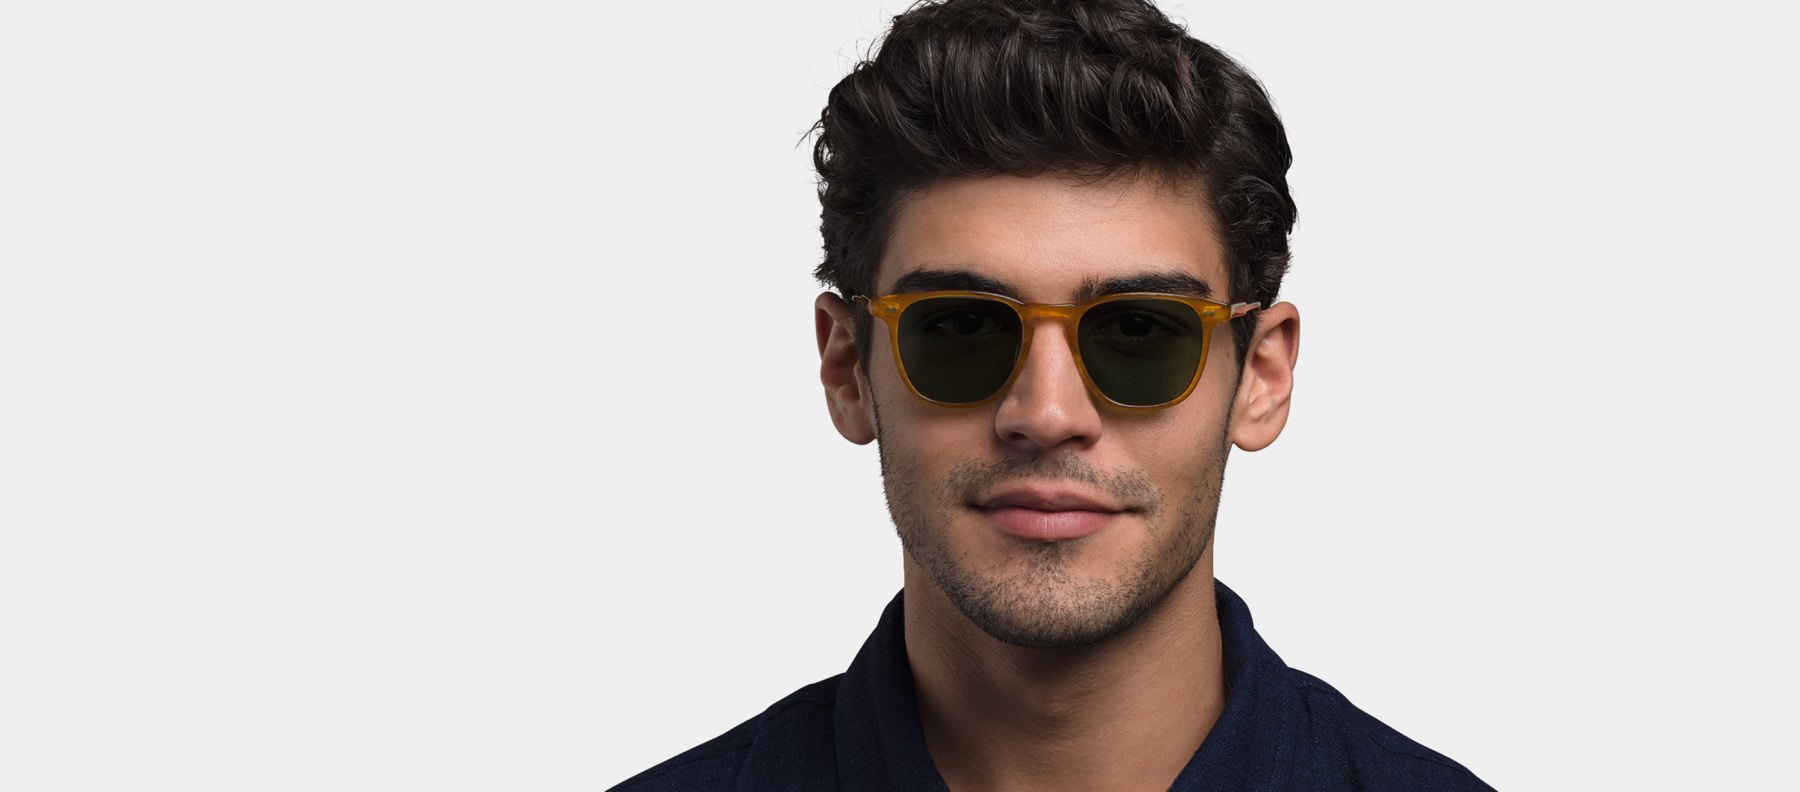 2019 best men's sunglasses